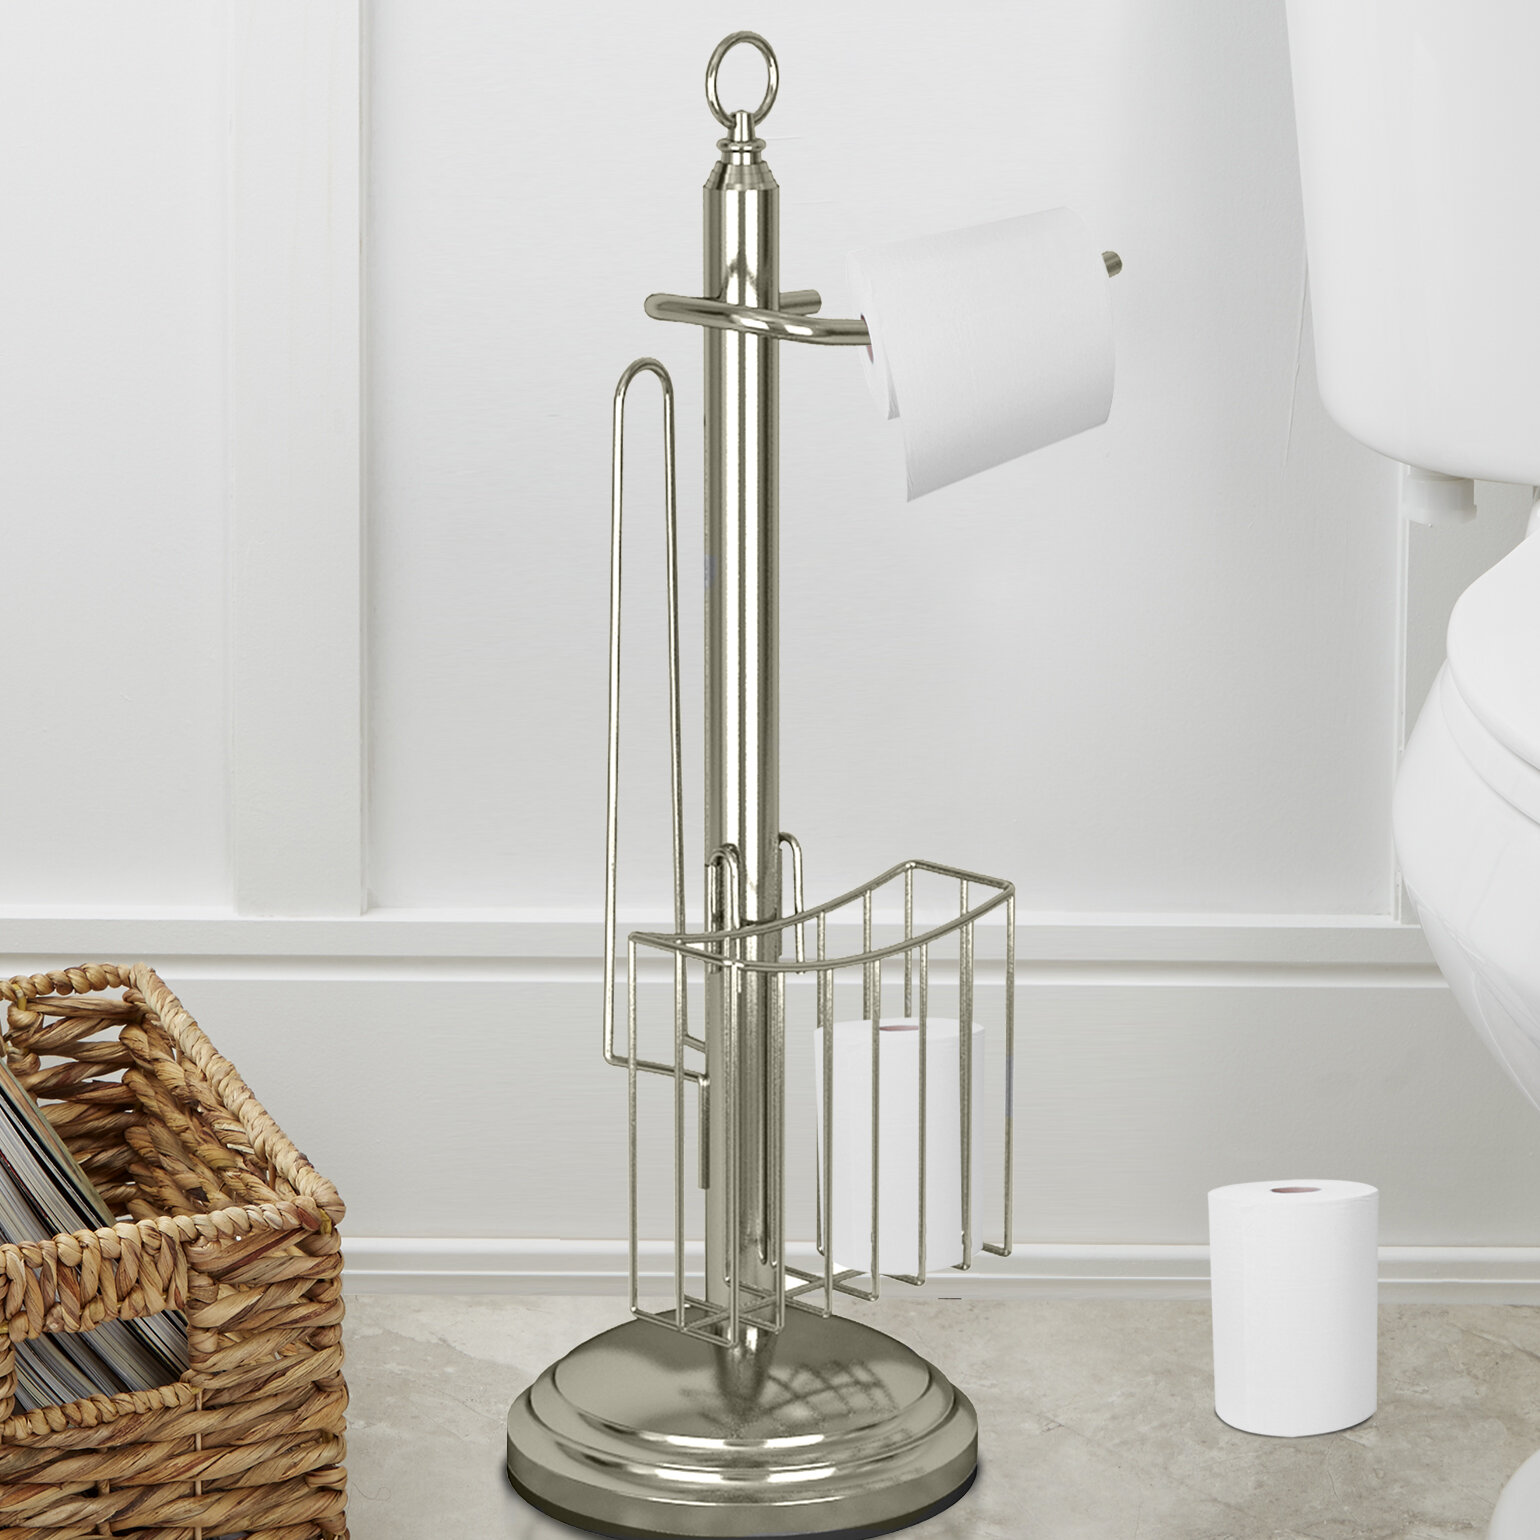 Tgn15h Free Standing Toilet Paper Holder With Storage